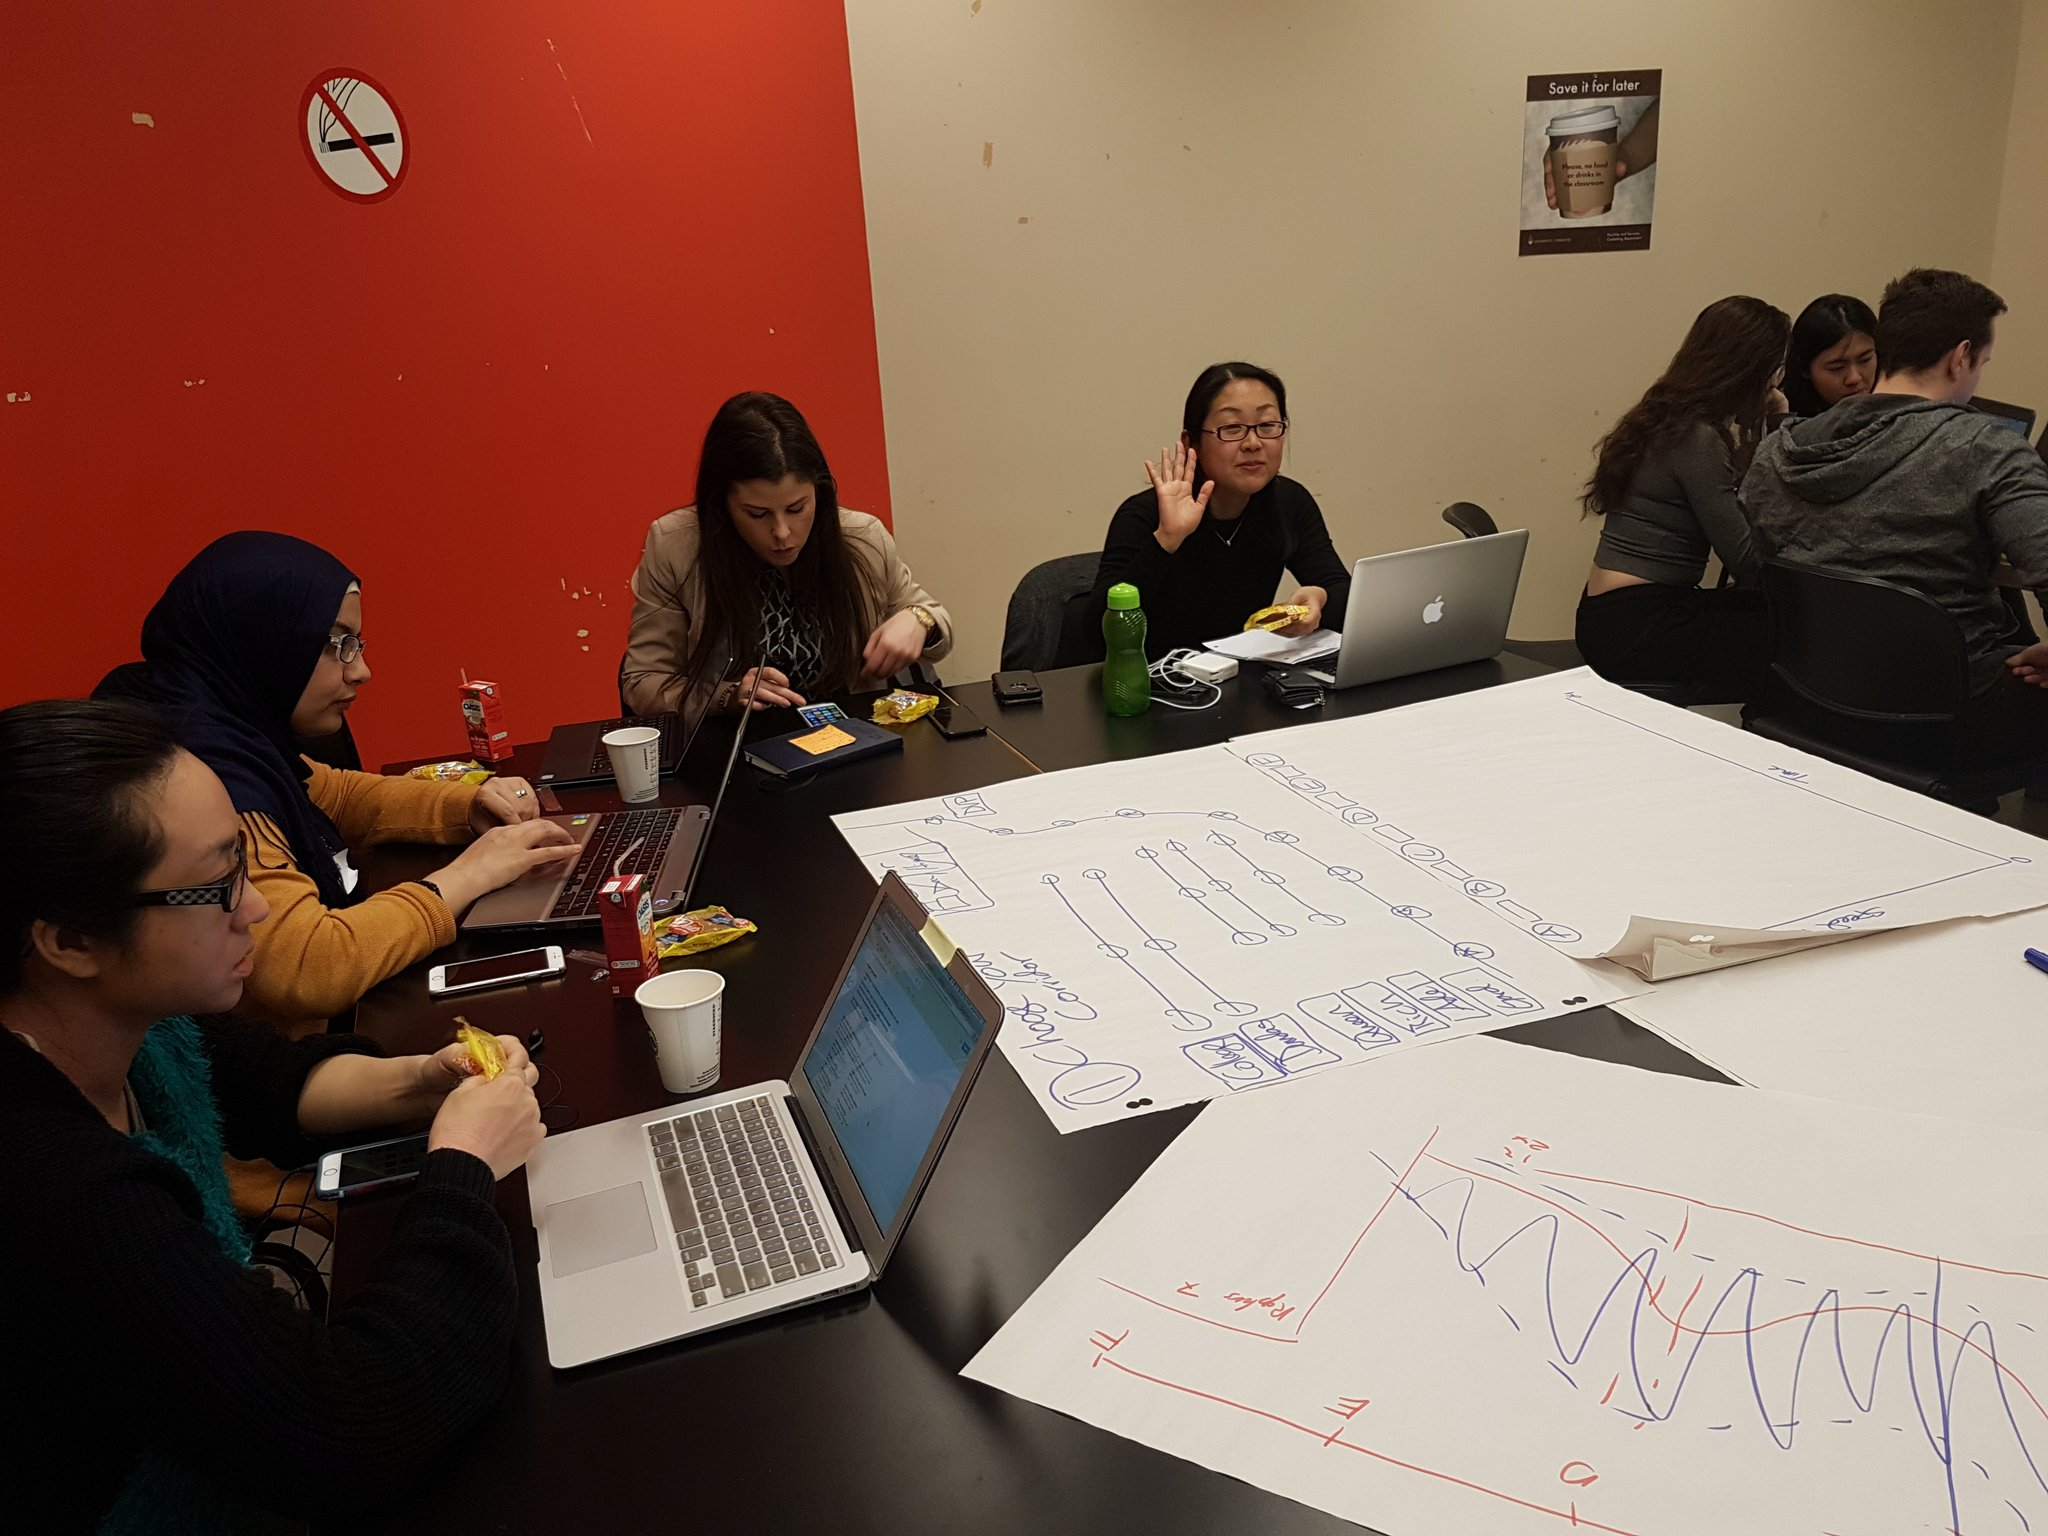 Check out these awesome women working on the Transportation challenge! #CodeAcrossTO #OpenData @TO_Transport brought an excellent project 👌 https://t.co/072p3T1LZd